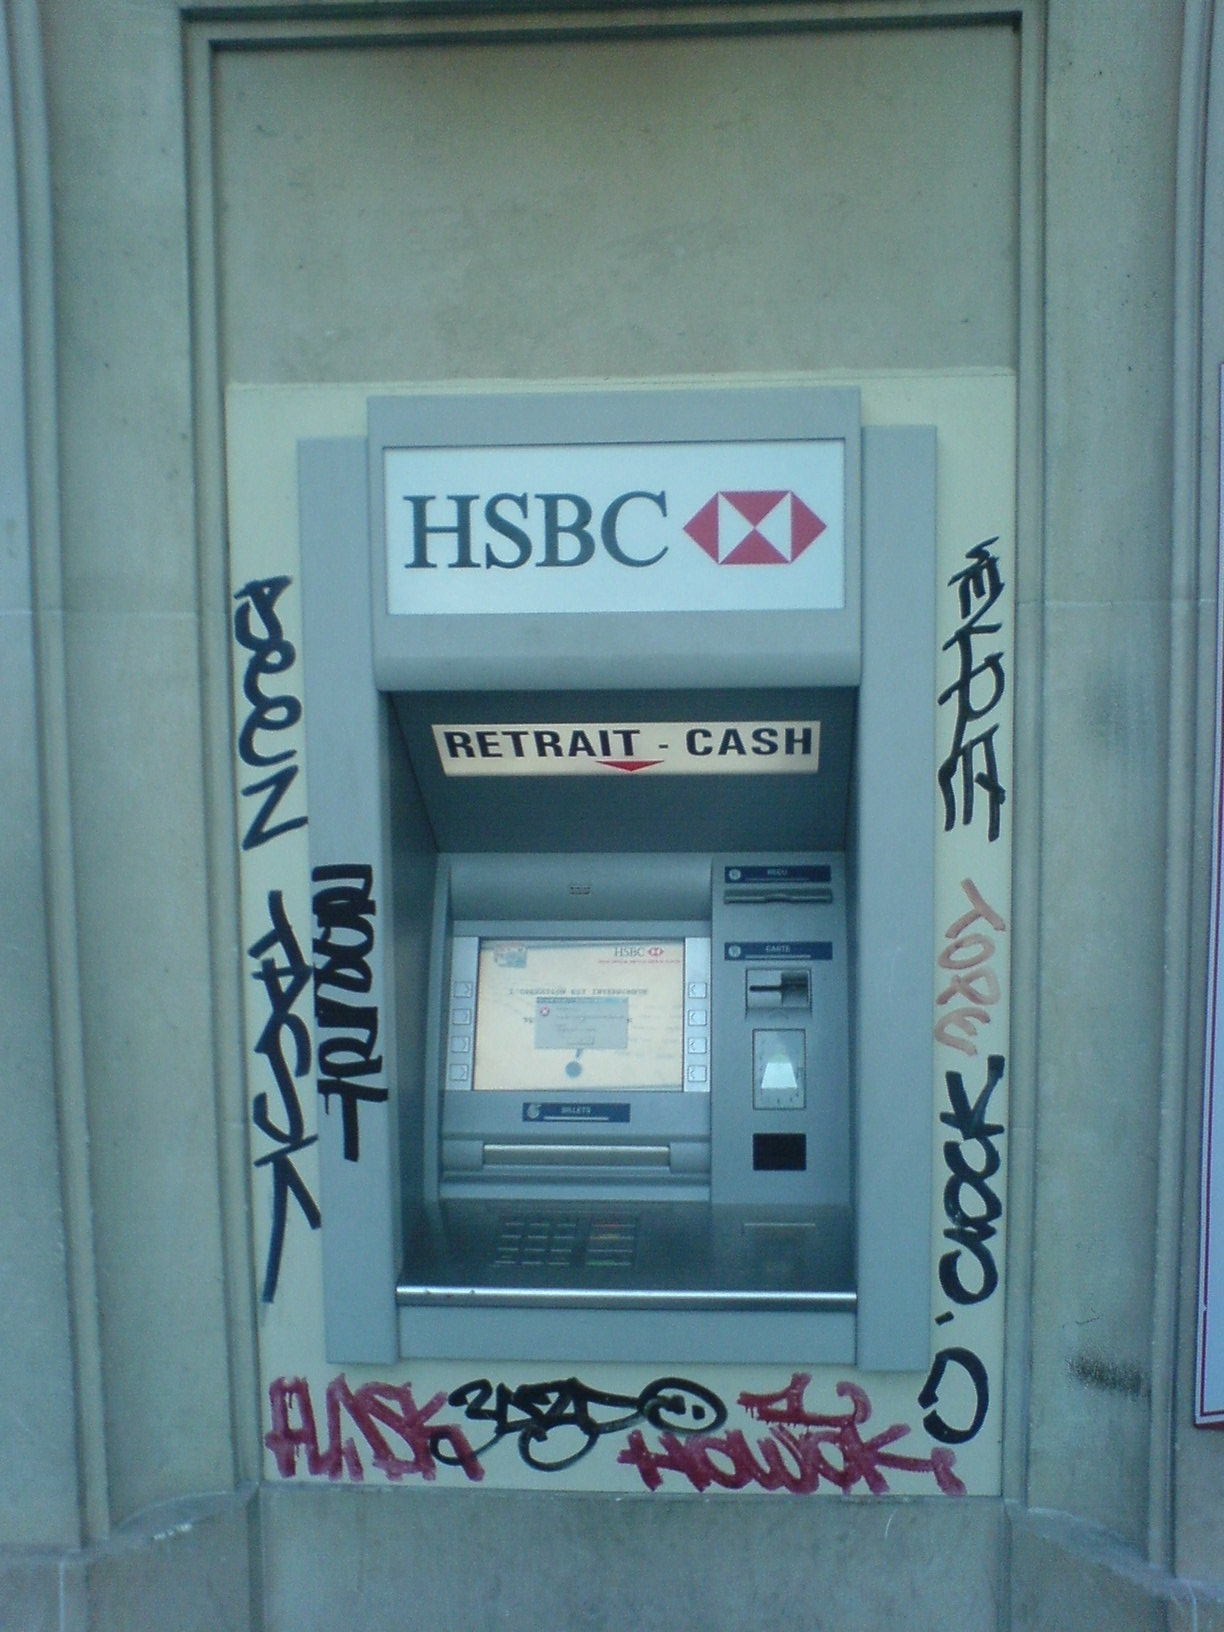 runtime_error_HSBC_Paris_2006_11_21_8h30_1